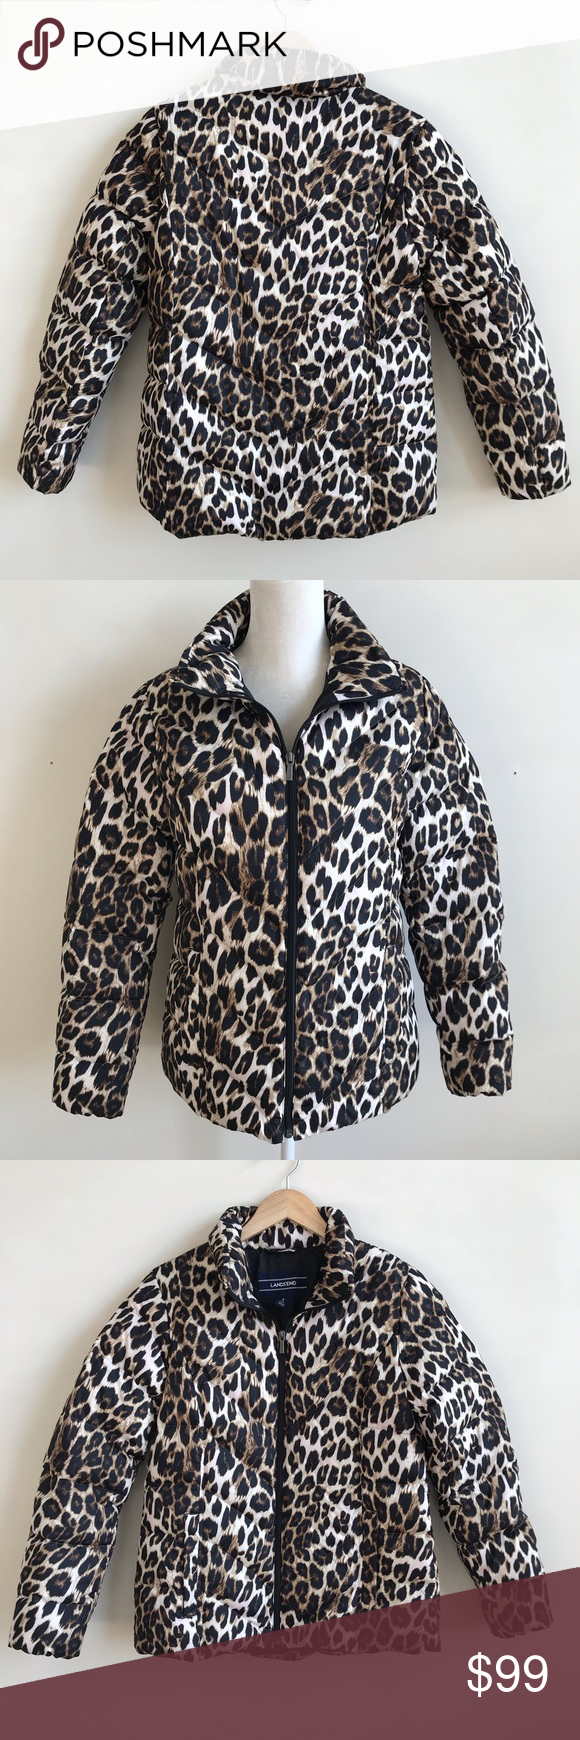 d0b7864a20b4 Lands End Leopard Responsible Down Puffer Jacket Leopard print Puffer jacket  from Lands End. Size Small (will fit 6-8). This is brand new, never worn,  ...